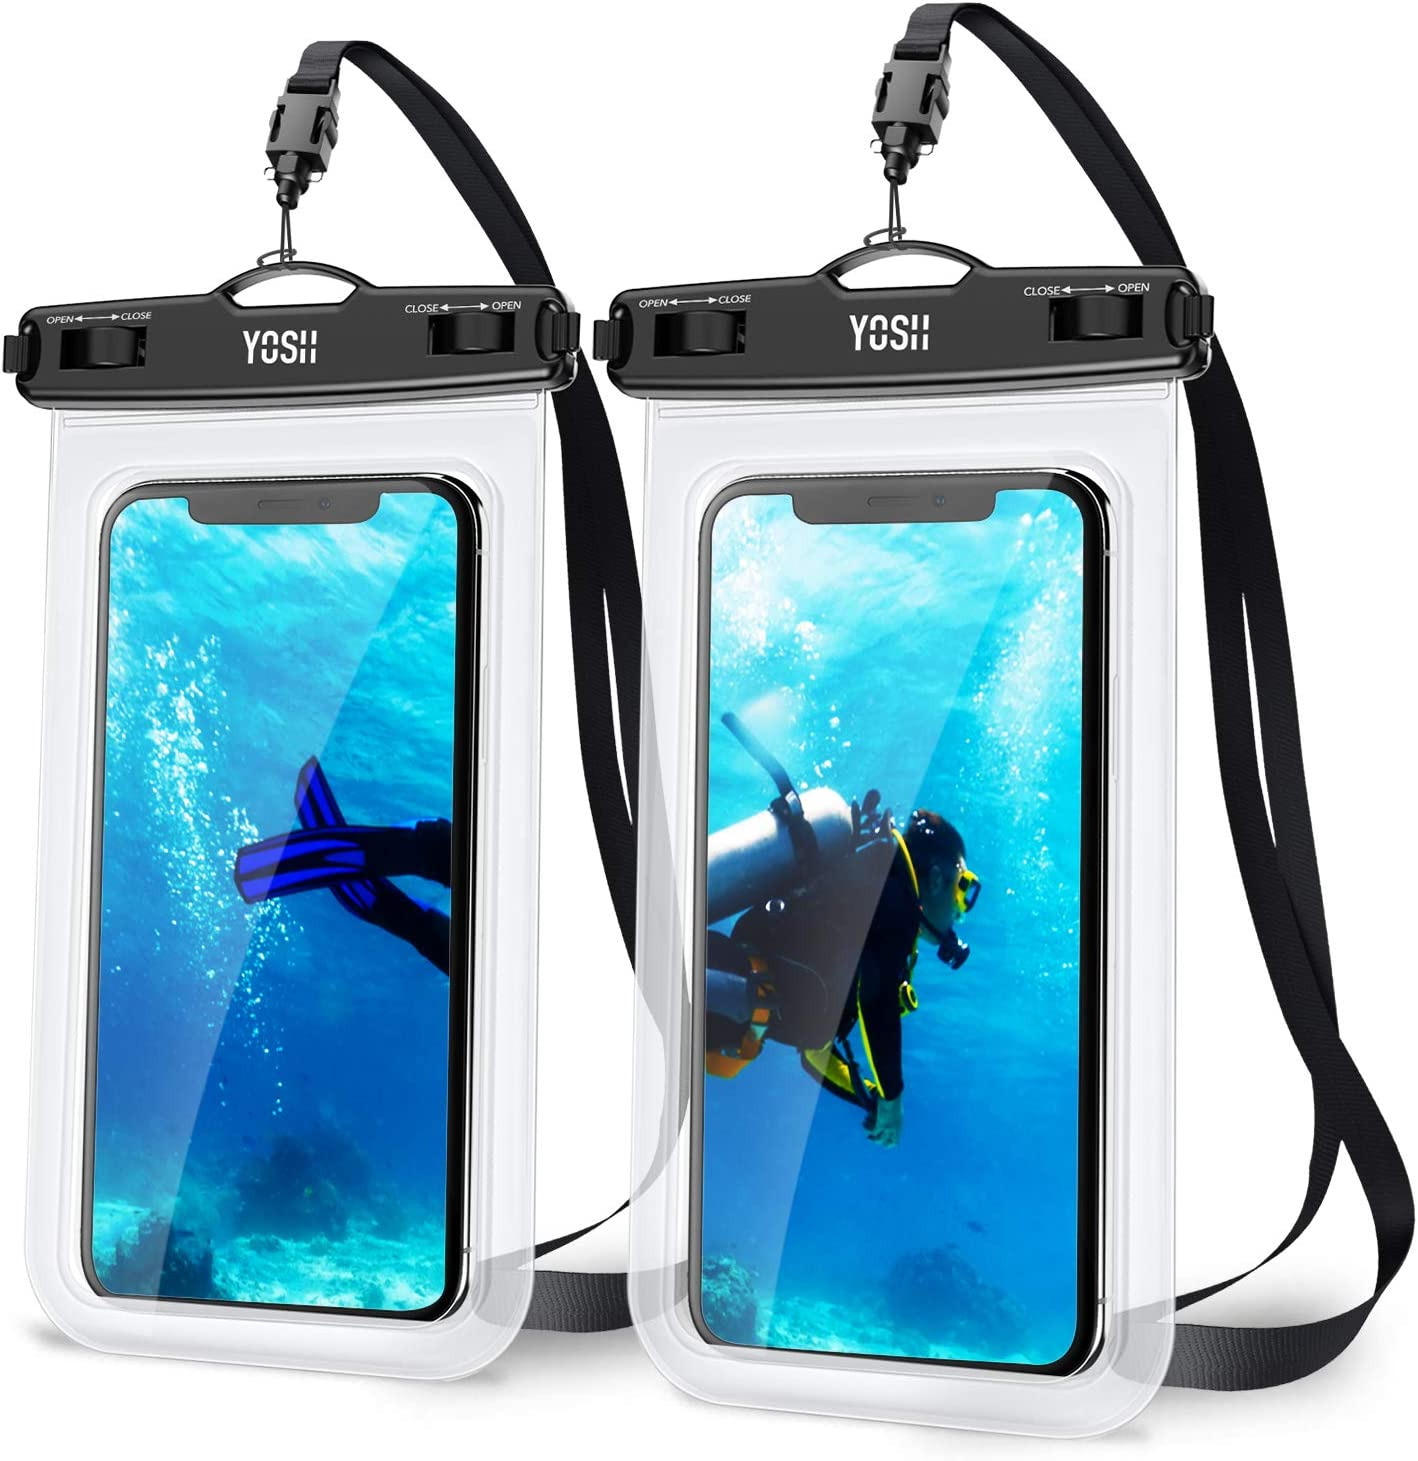 YOSH Waterproof 7.0 Inch Phone Case Universal Water Proof Phone Pouch IPX8 Dry Bag Compatible for iPhone 12 Pro Max 11 XR XS X 8 7 6 SE Galaxy Pixel for Beach Kayaking Travel Bath Underwater 2-Pack